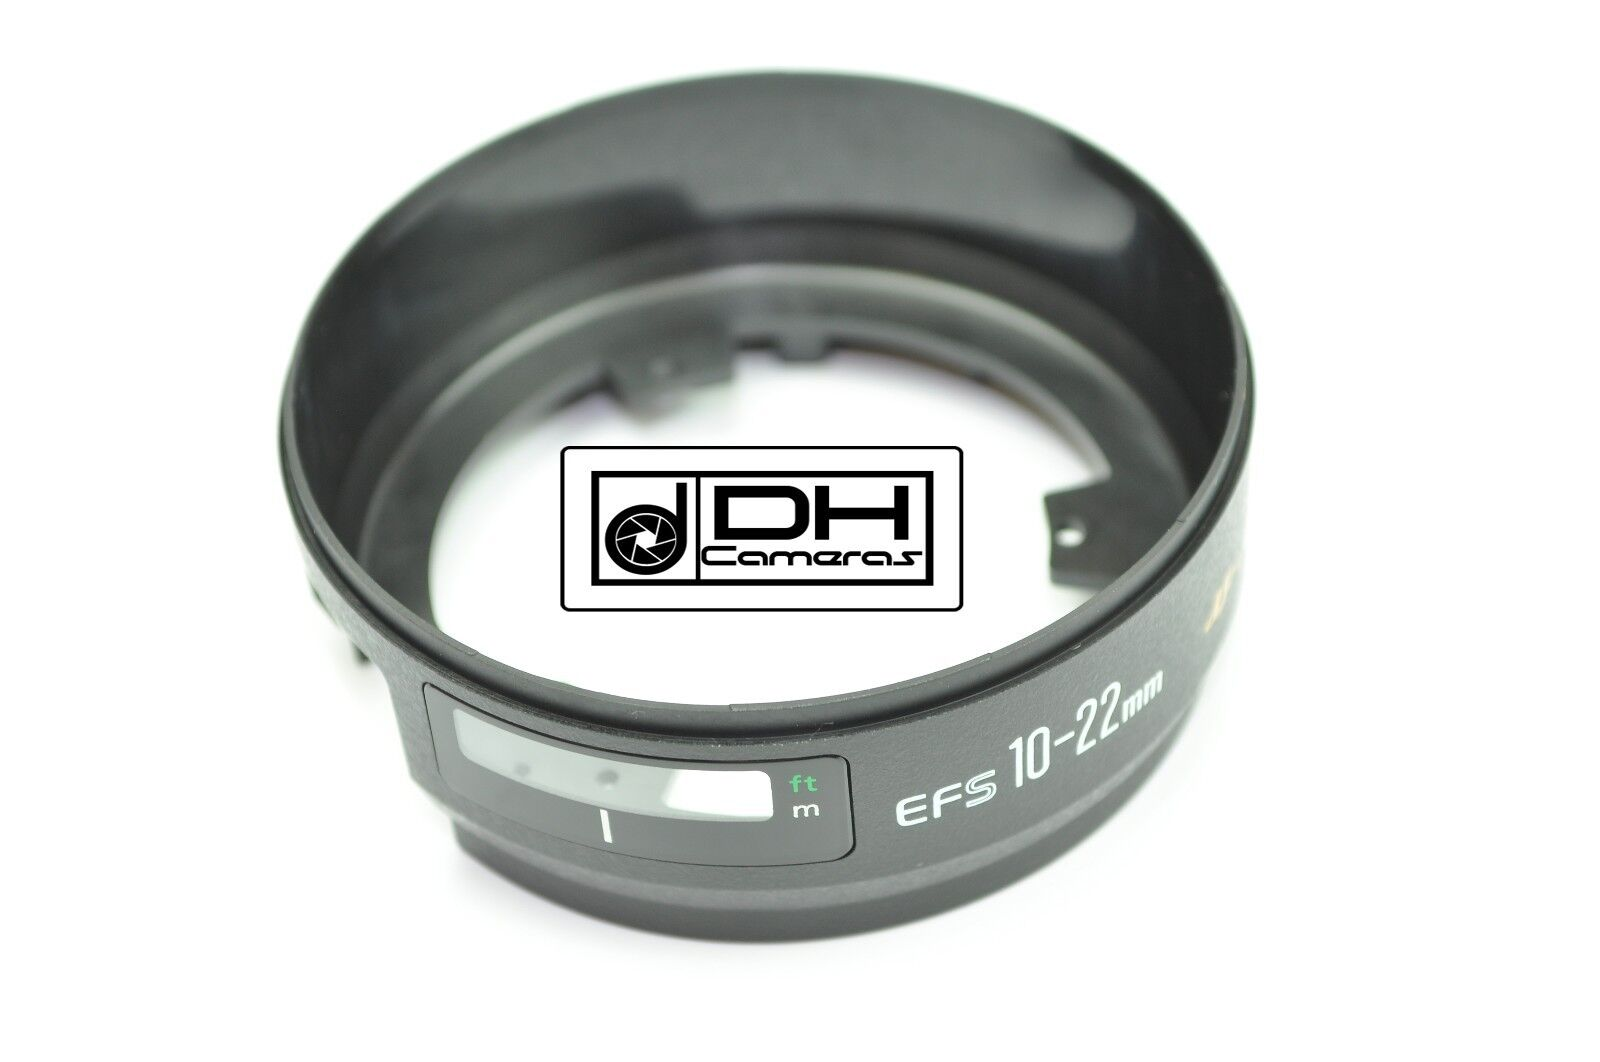 Canon Ef-s 10-22mm F/3.5-4.5 Usm Fixed Barrel Assembly Re...